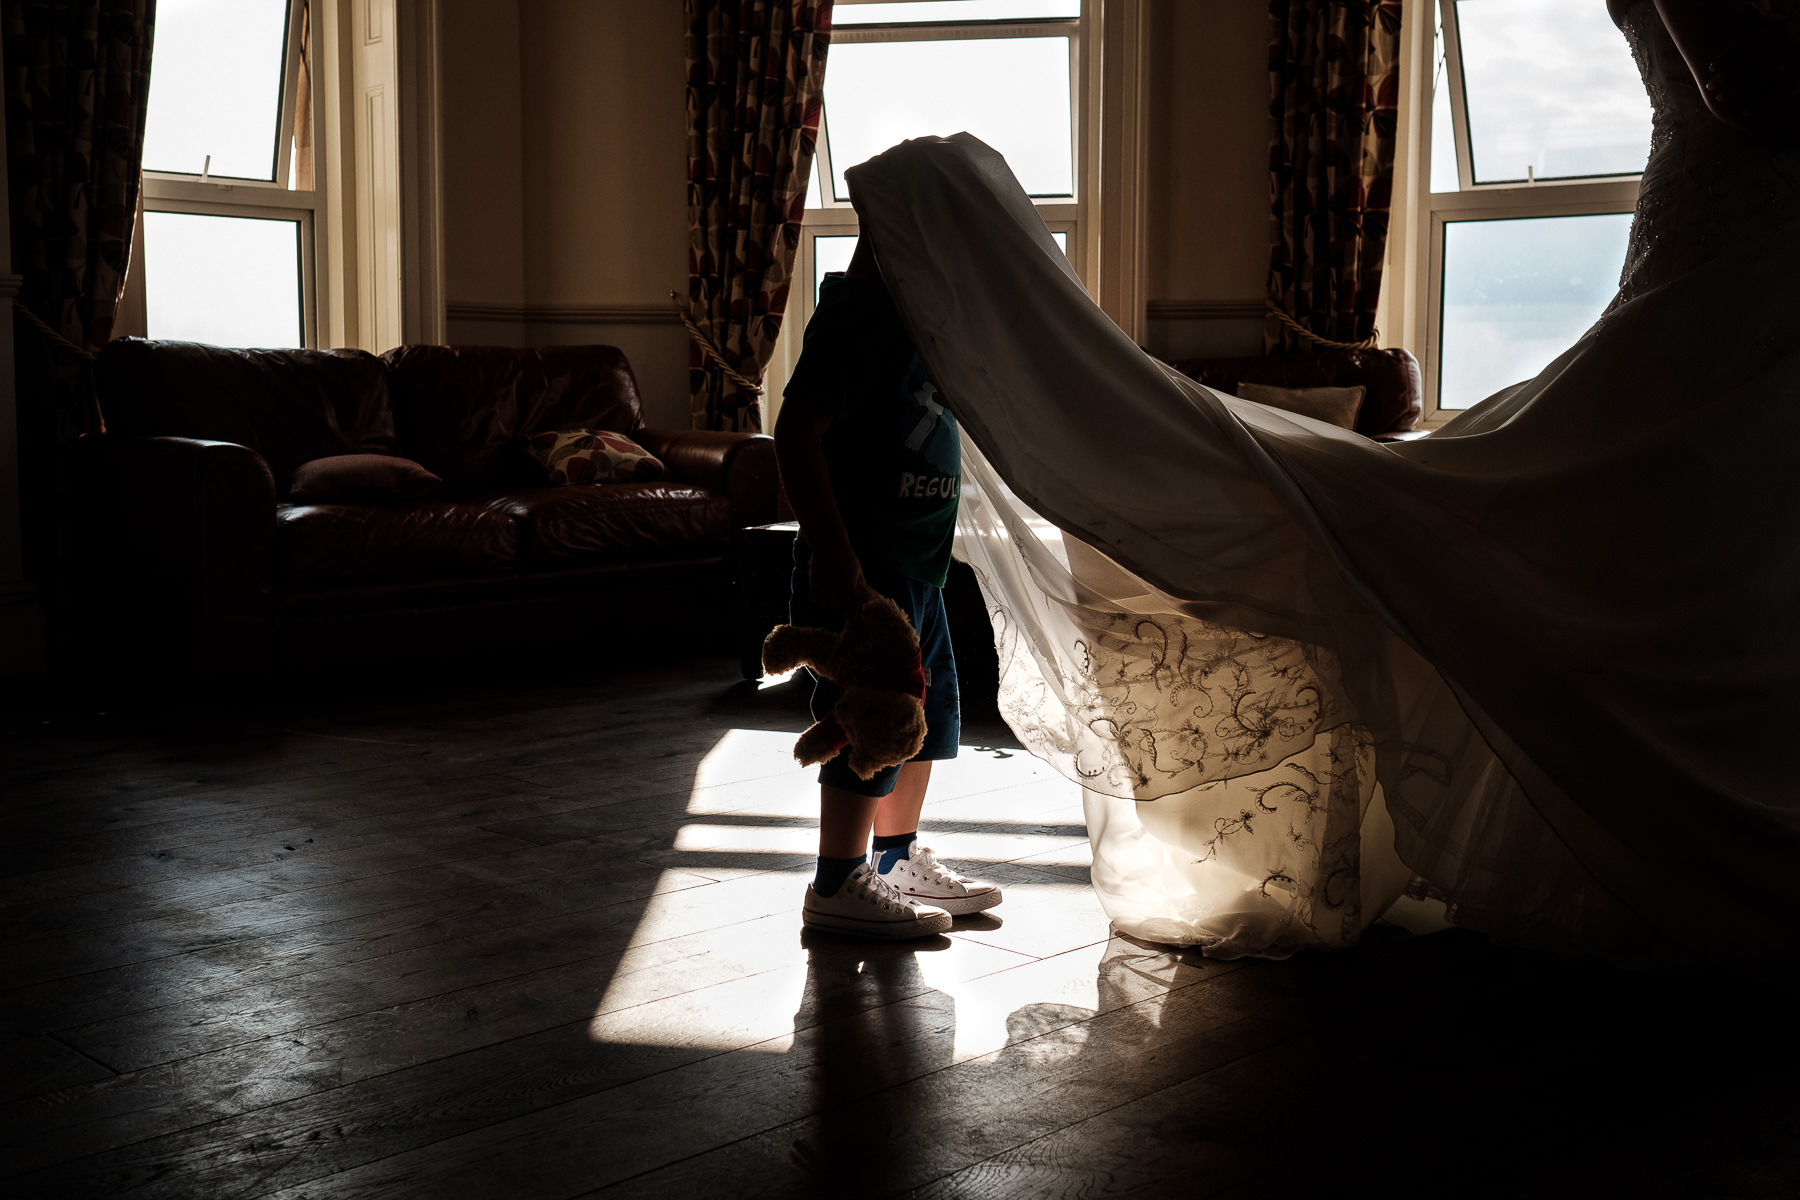 walton park clevedon boy with head under wedding dress